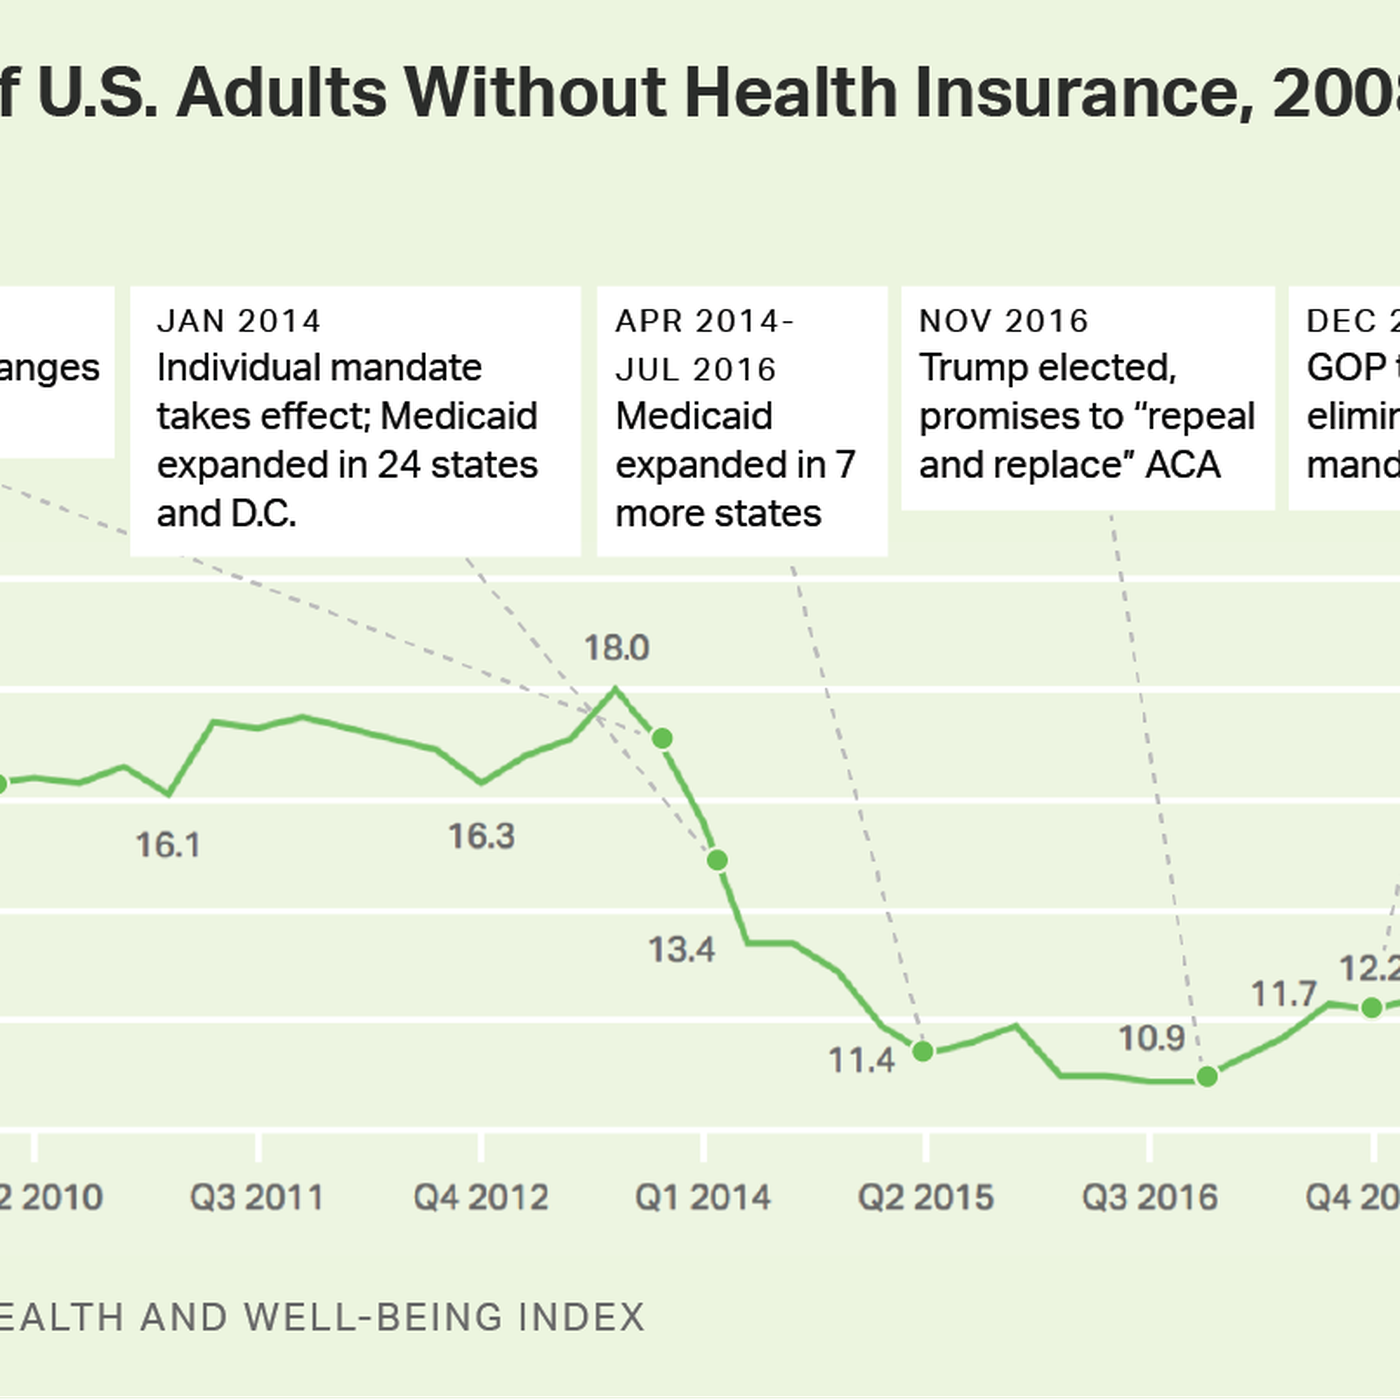 Under Trump, the number of uninsured Americans has gone up